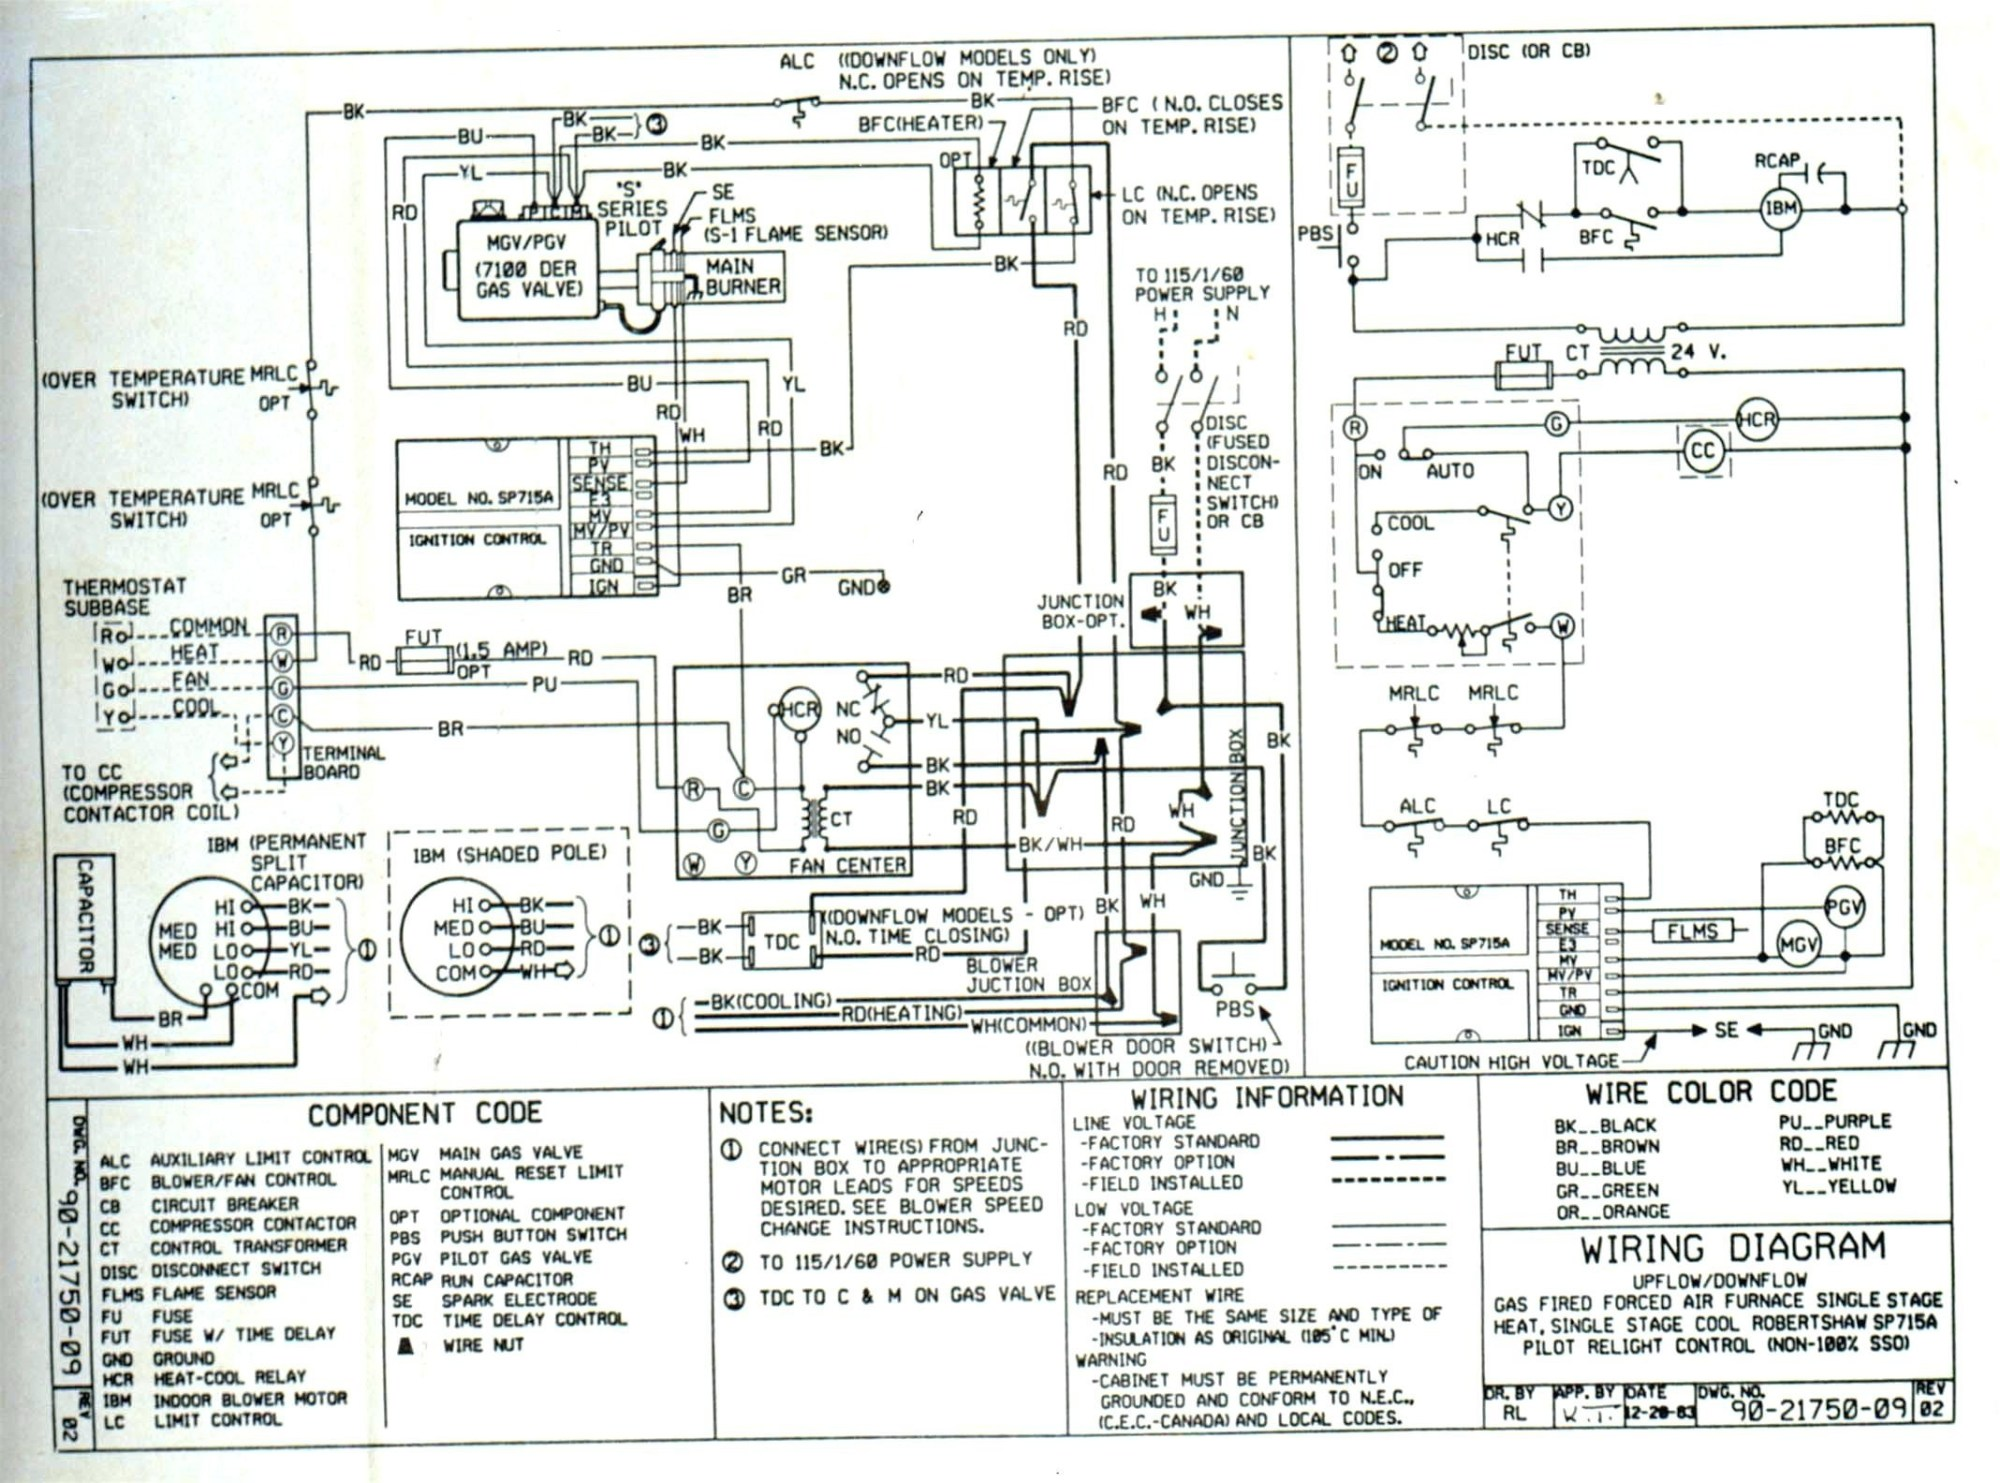 hight resolution of nordyne thermostat wiring diagram nordyne thermostat wiring diagram totaline thermostat wiring diagram collection trane thermostat